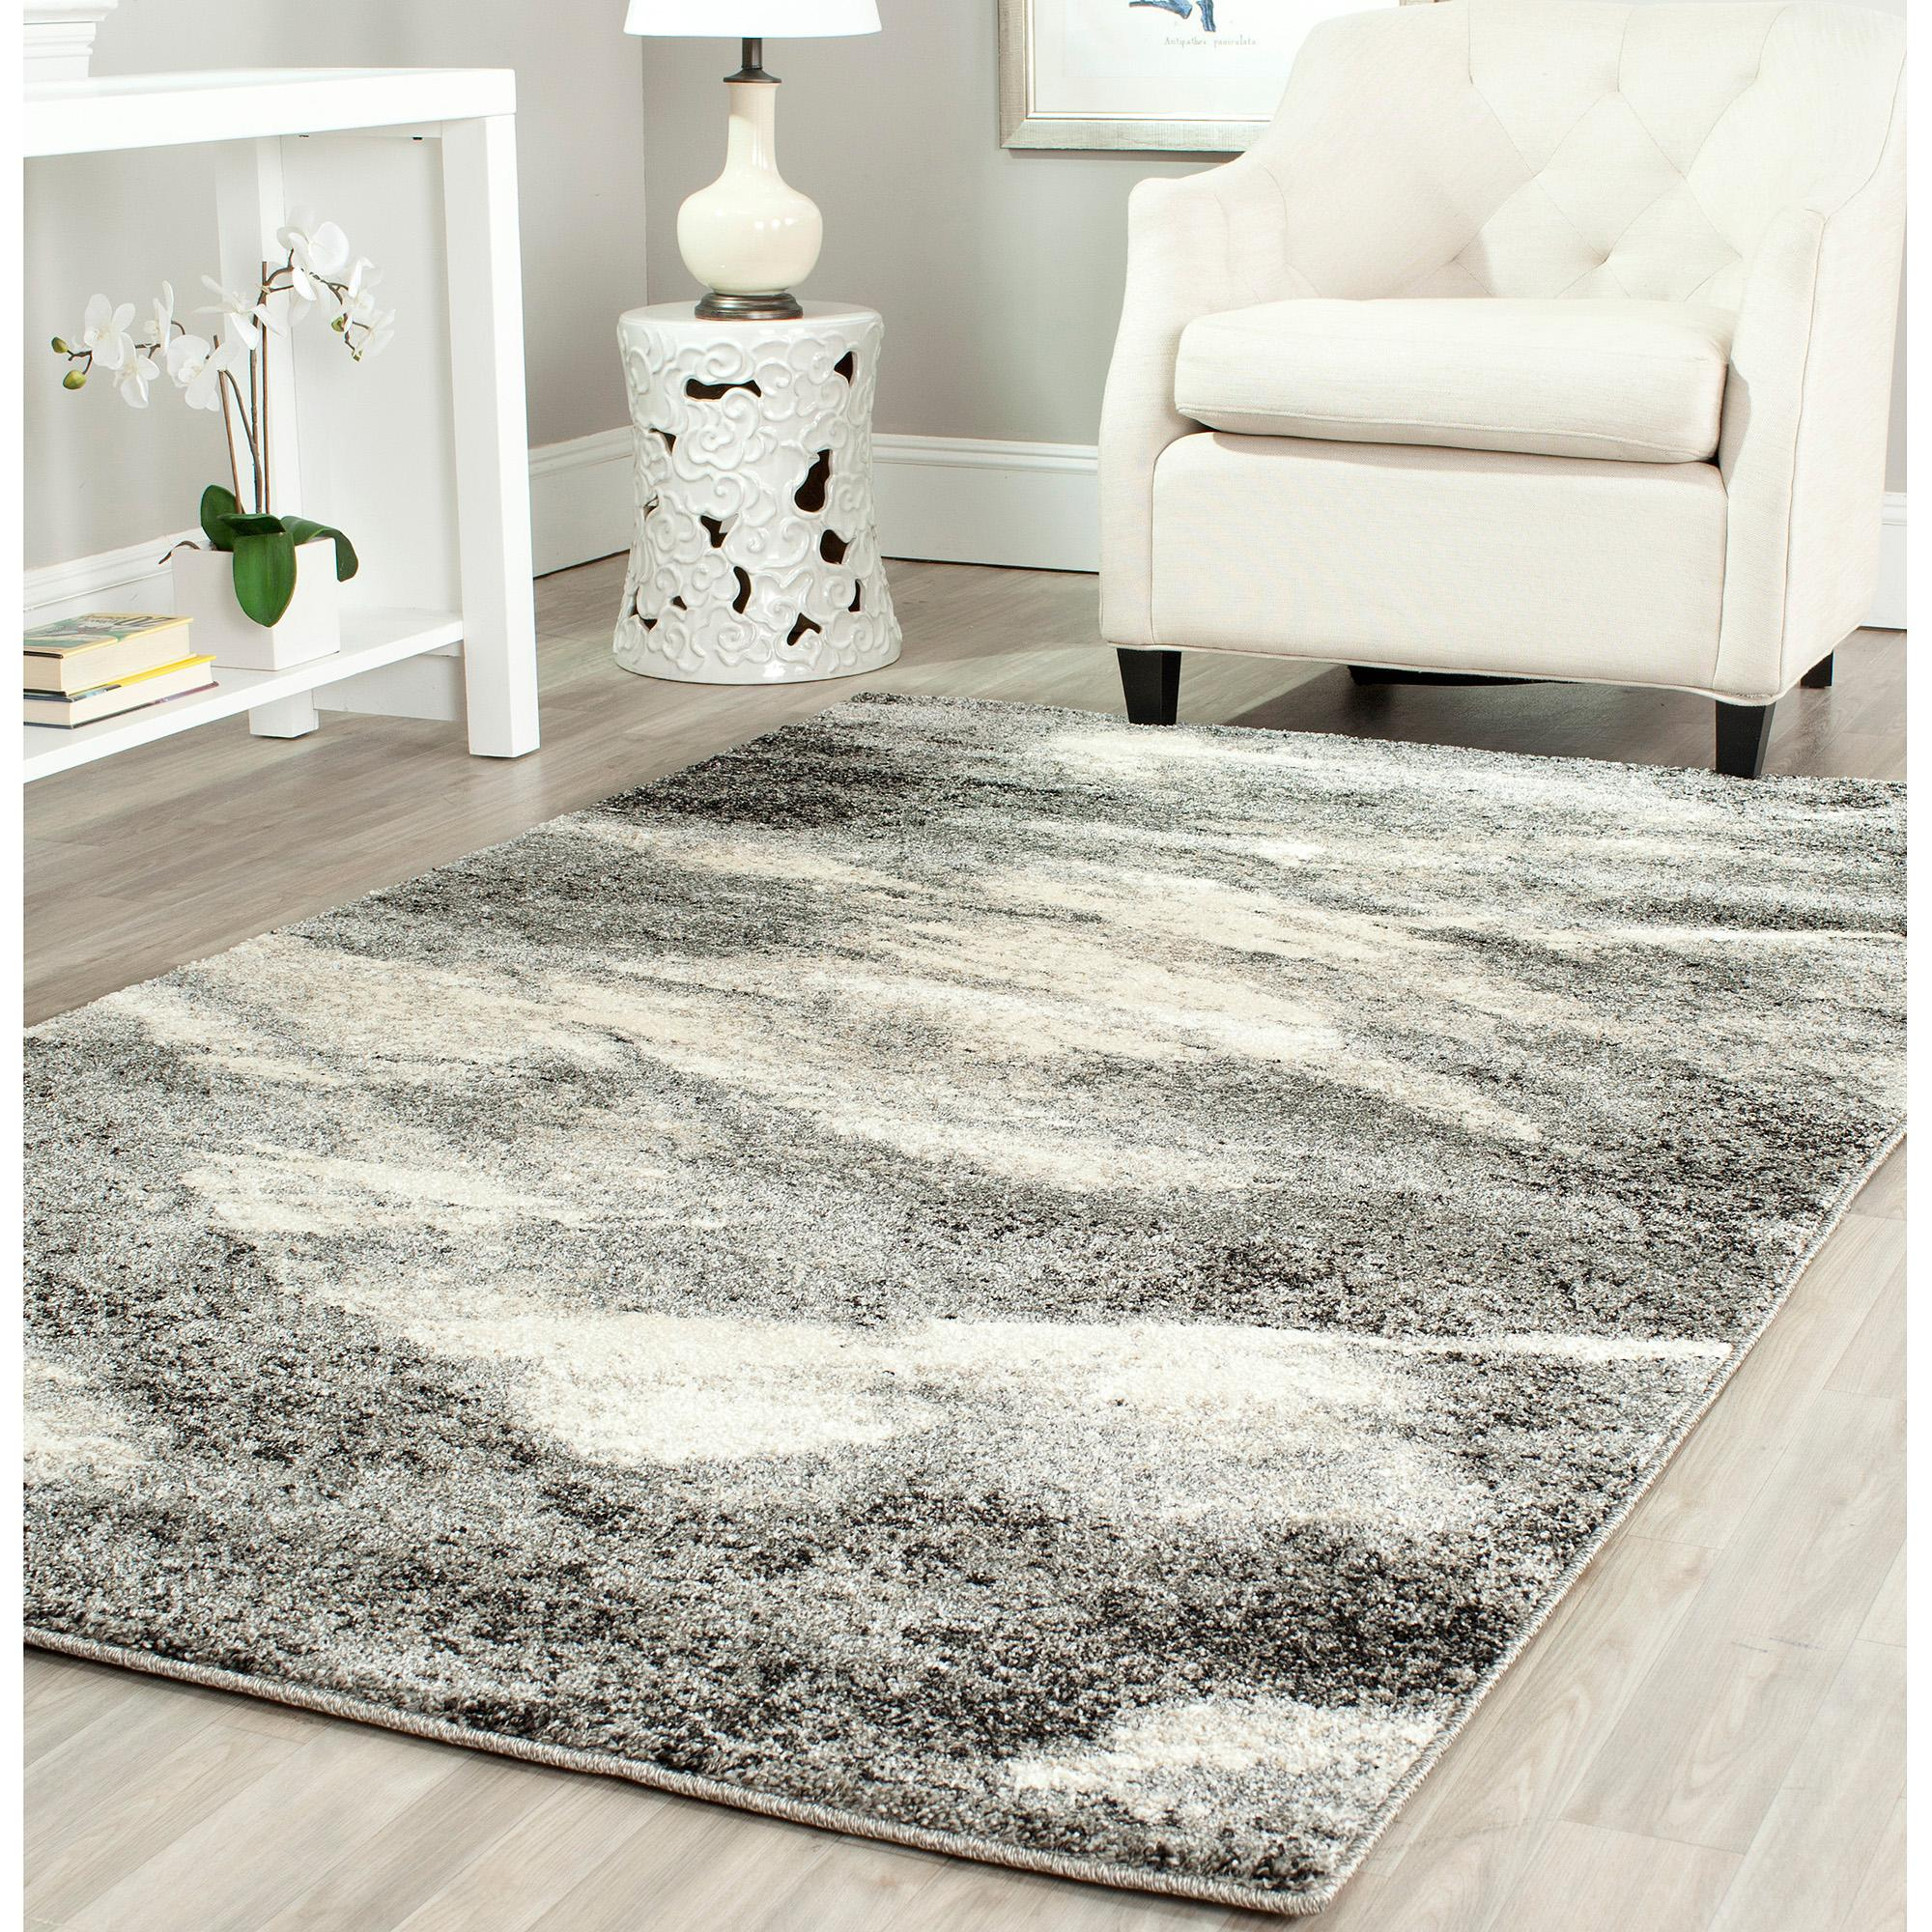 Damask area rug black and white roselawnlutheran for White area rug